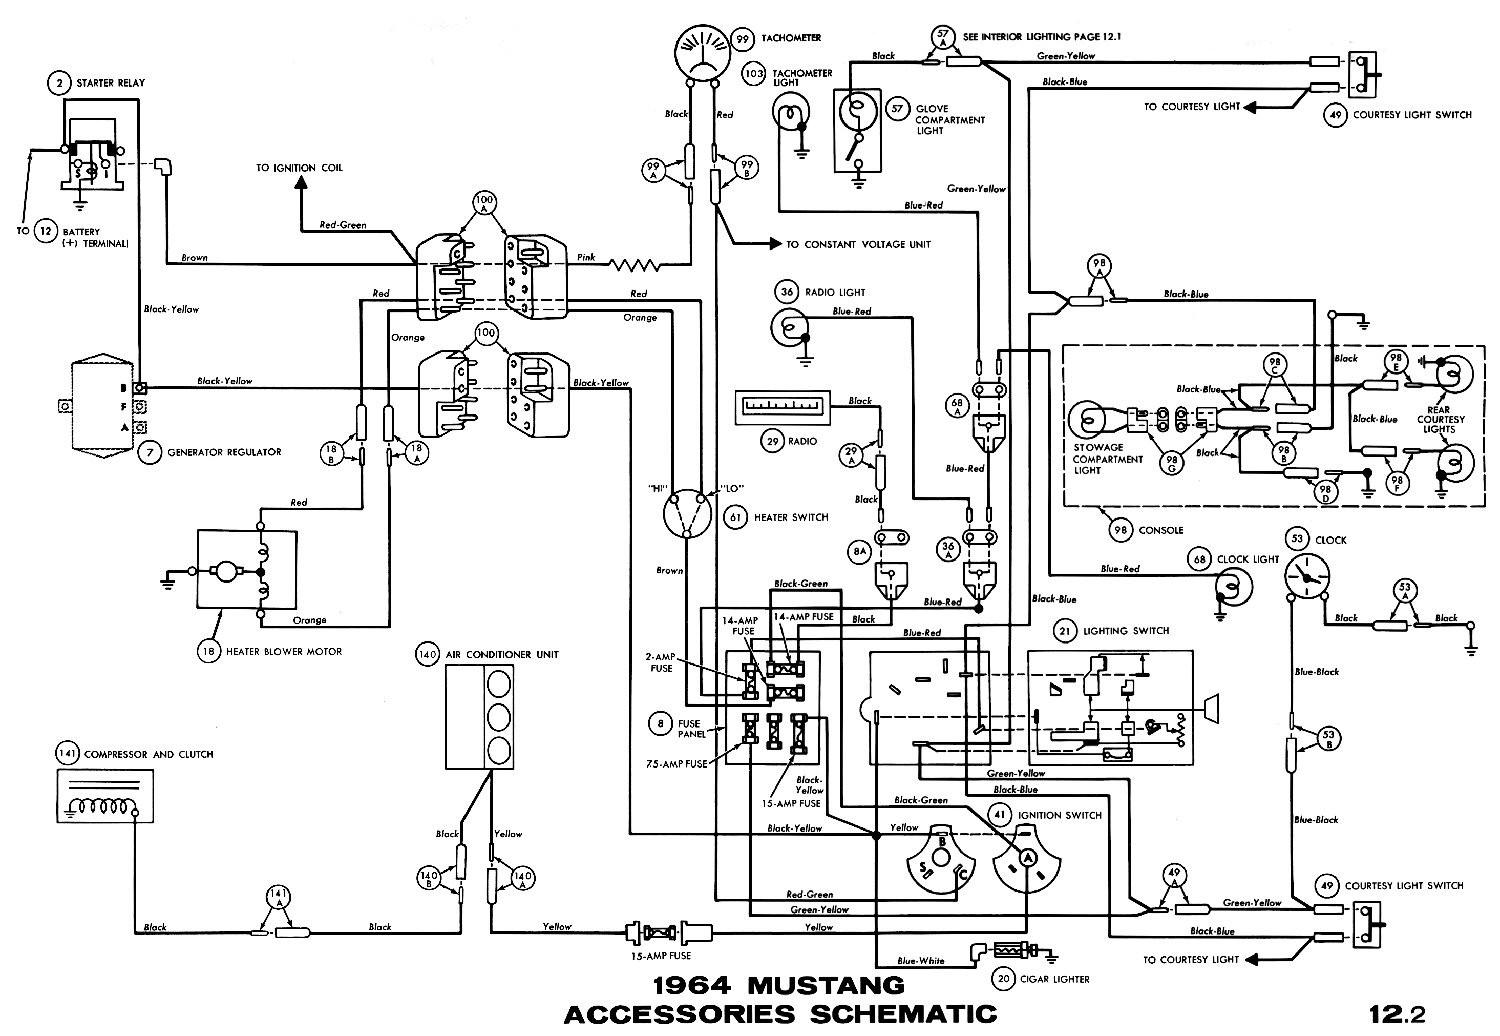 Ford mustang 65 wiring diagram electrical drawing wiring diagram 1965 mustang wiring diagram wiring diagram image rh mainetreasurechest com 1965 mustang wiring diagram for lighting 1965 mustang wiring diagram manual cheapraybanclubmaster Gallery